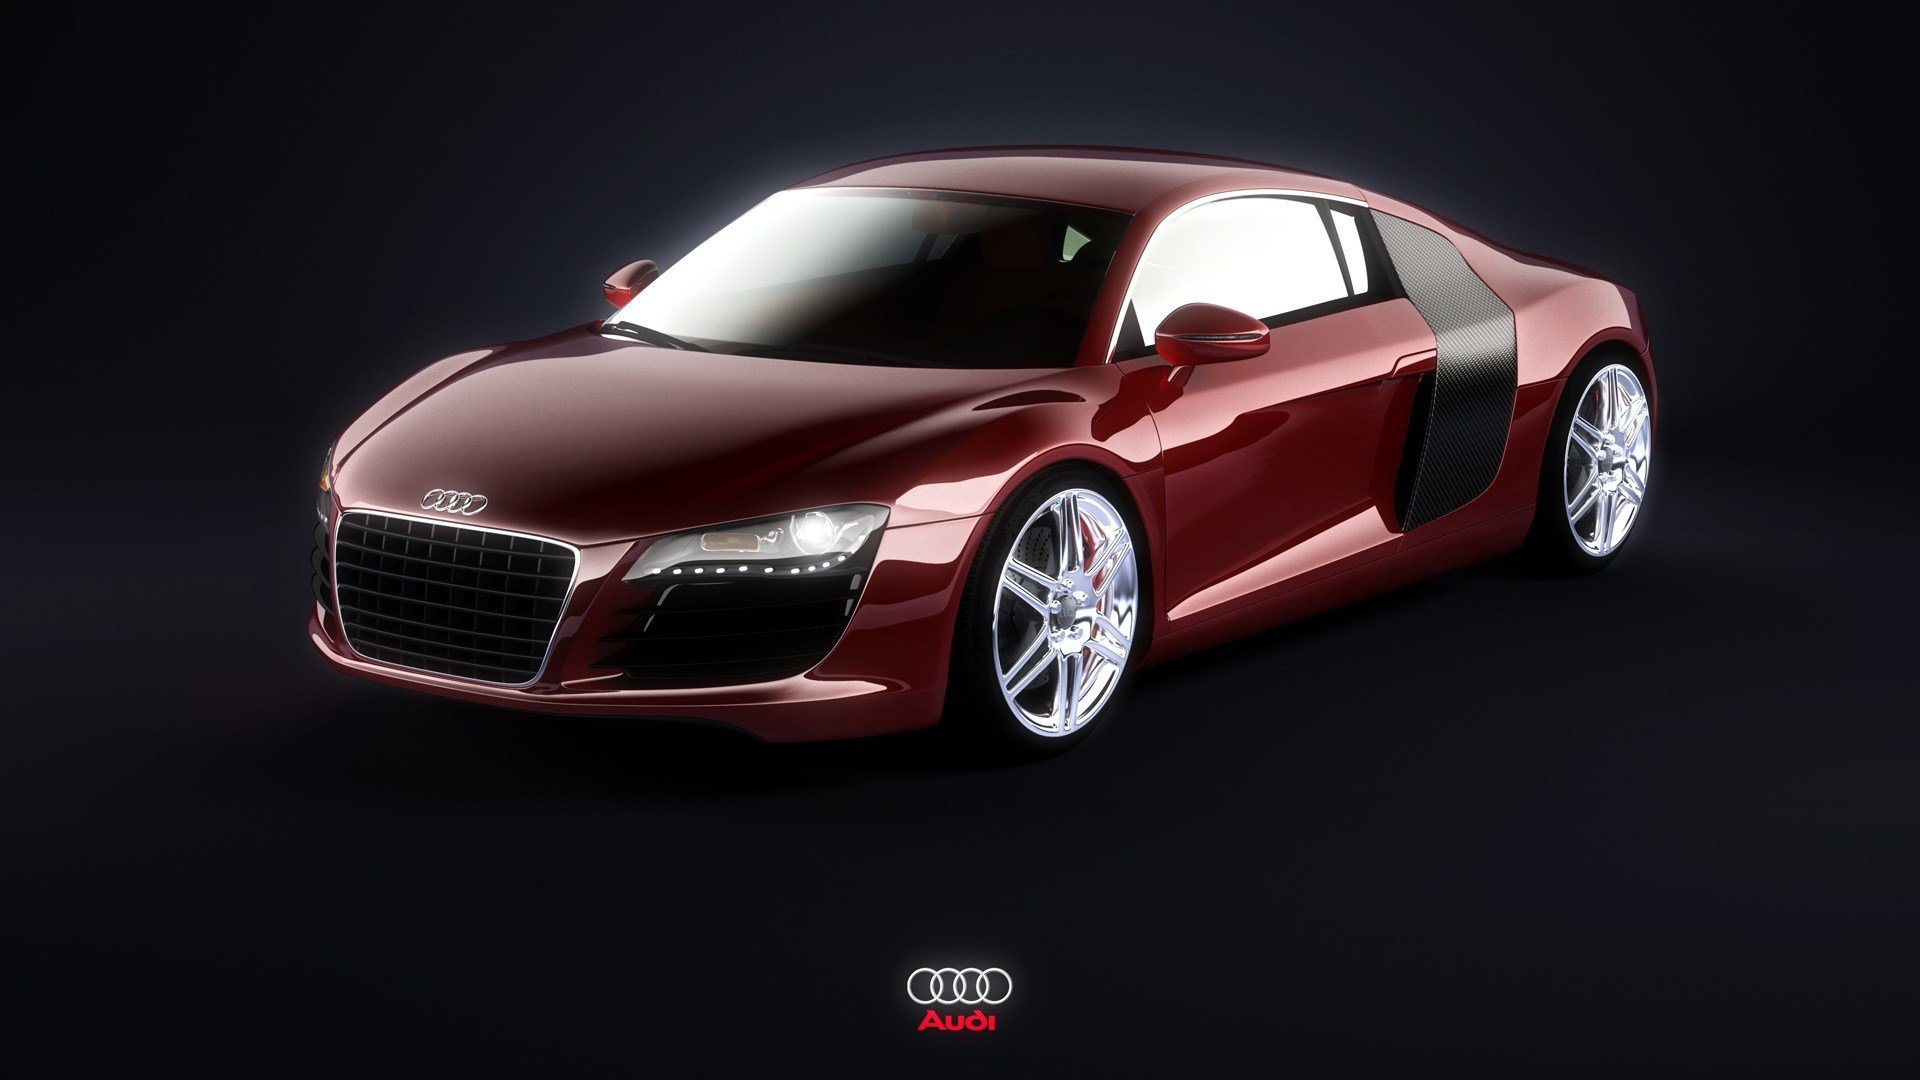 Latest Red Audi R8 Wallpaper Audi Cars Wallpapers In Jpg Format Free Download